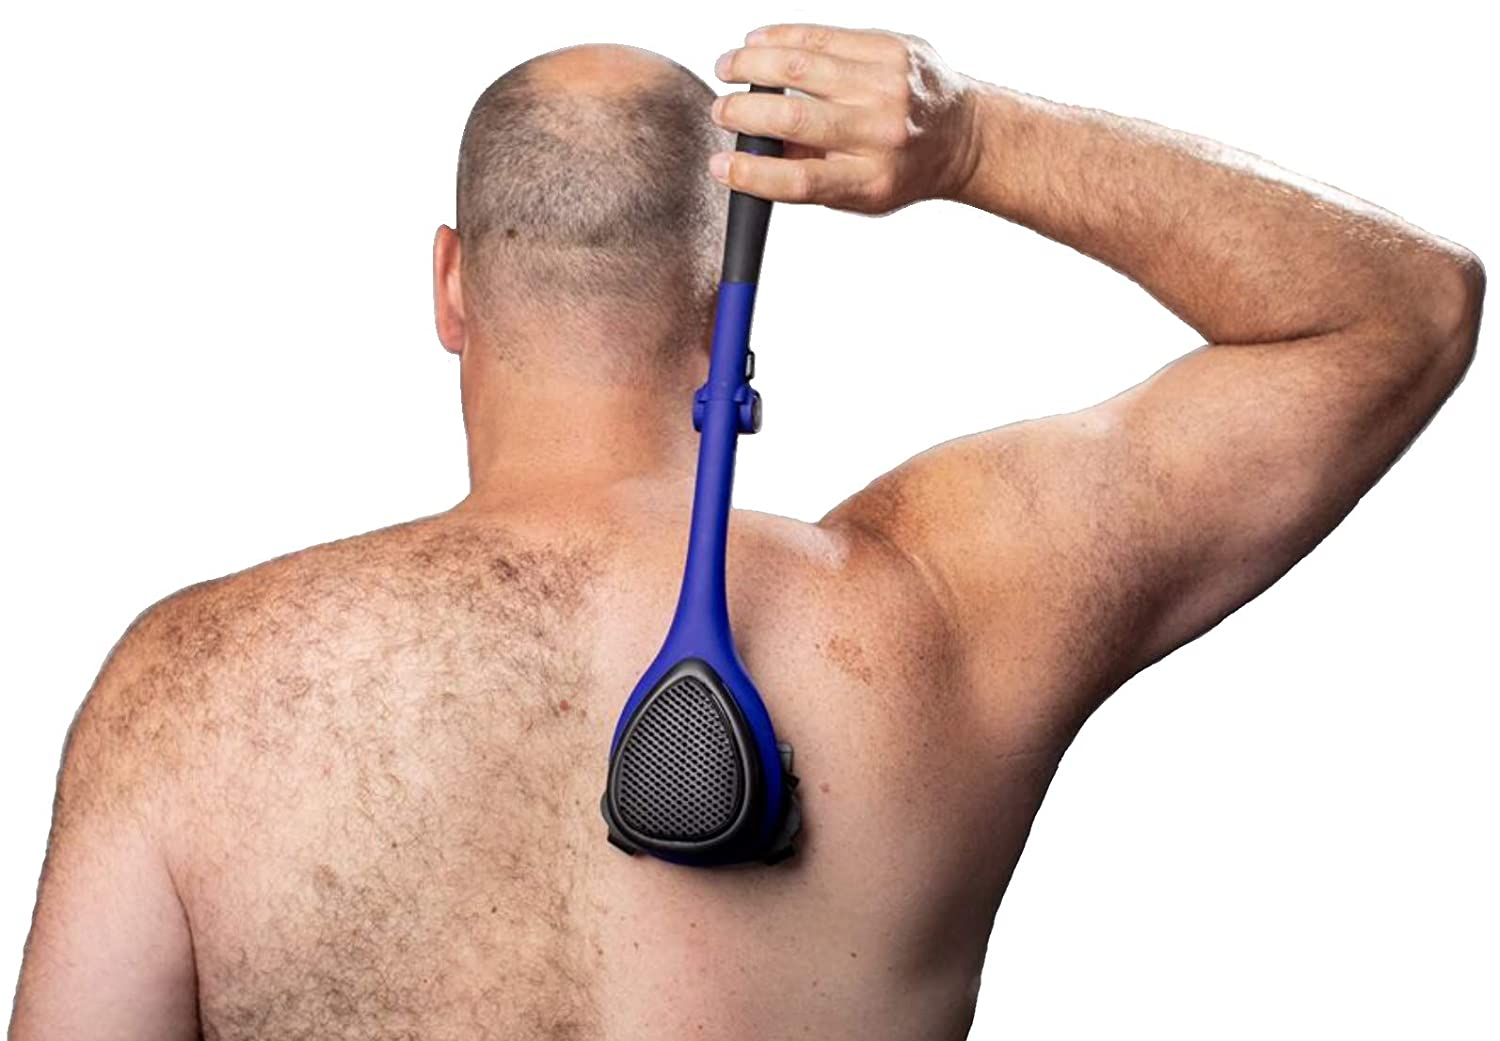 baKblade 20 ELITE PLUS  Back Hair Removal and Body Shaver DIY Ergonomic Handle Shave Wet or Dry